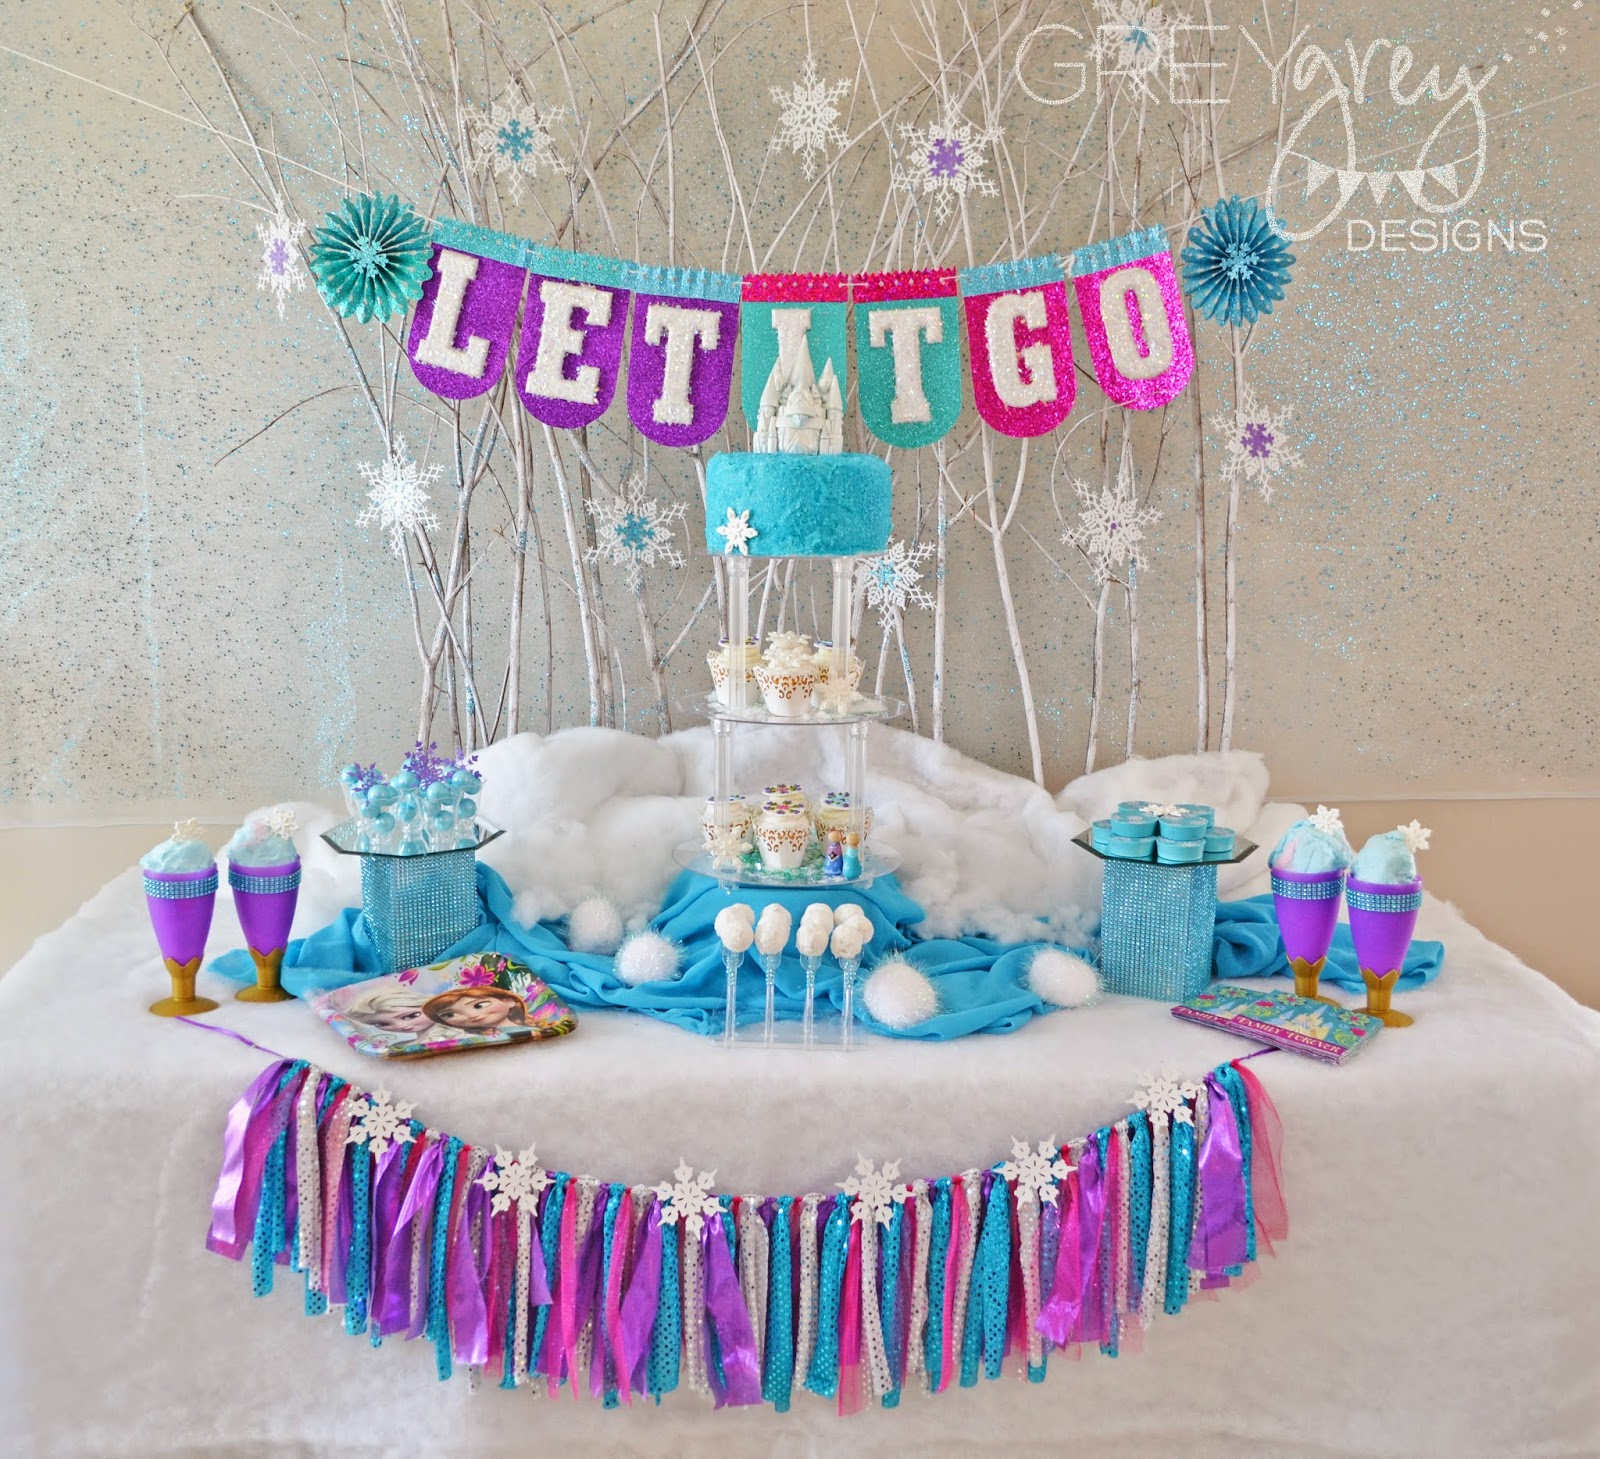 GreyGrey Designs Giveaway Frozen Birthday Party Pack for 8 with